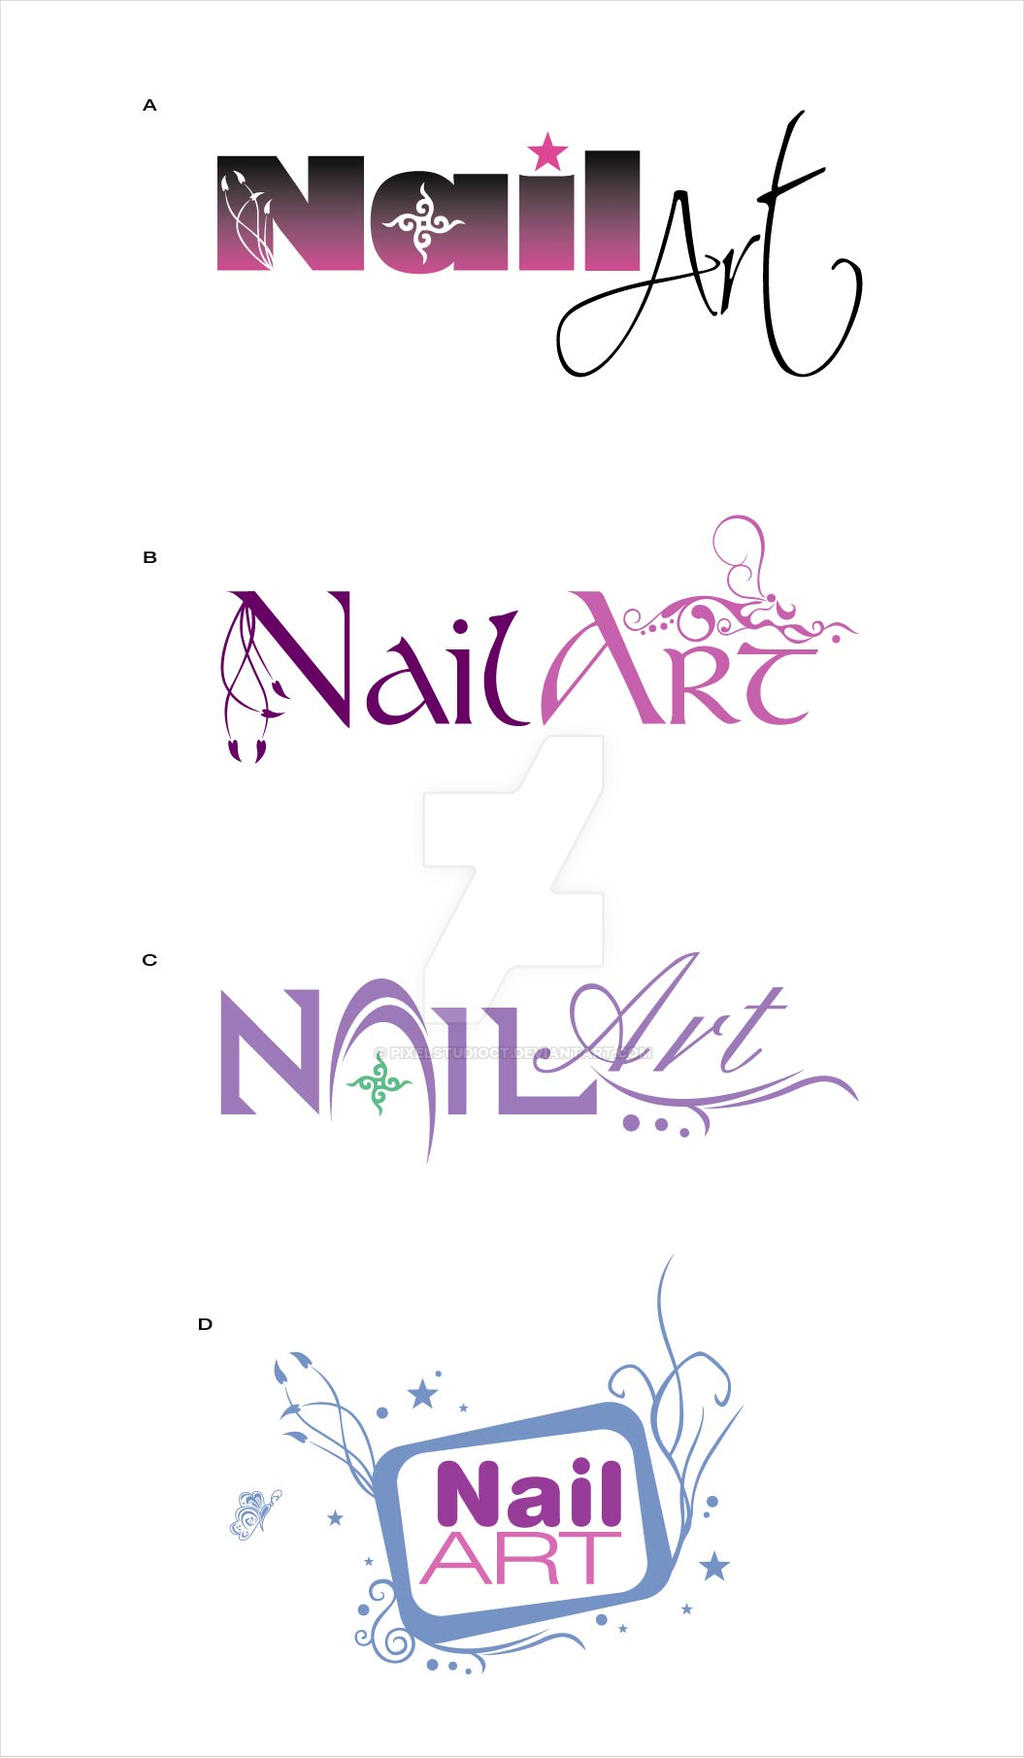 Nail Art Ideas Logo Nail Art Pictures Of Nail Art Design Ideas